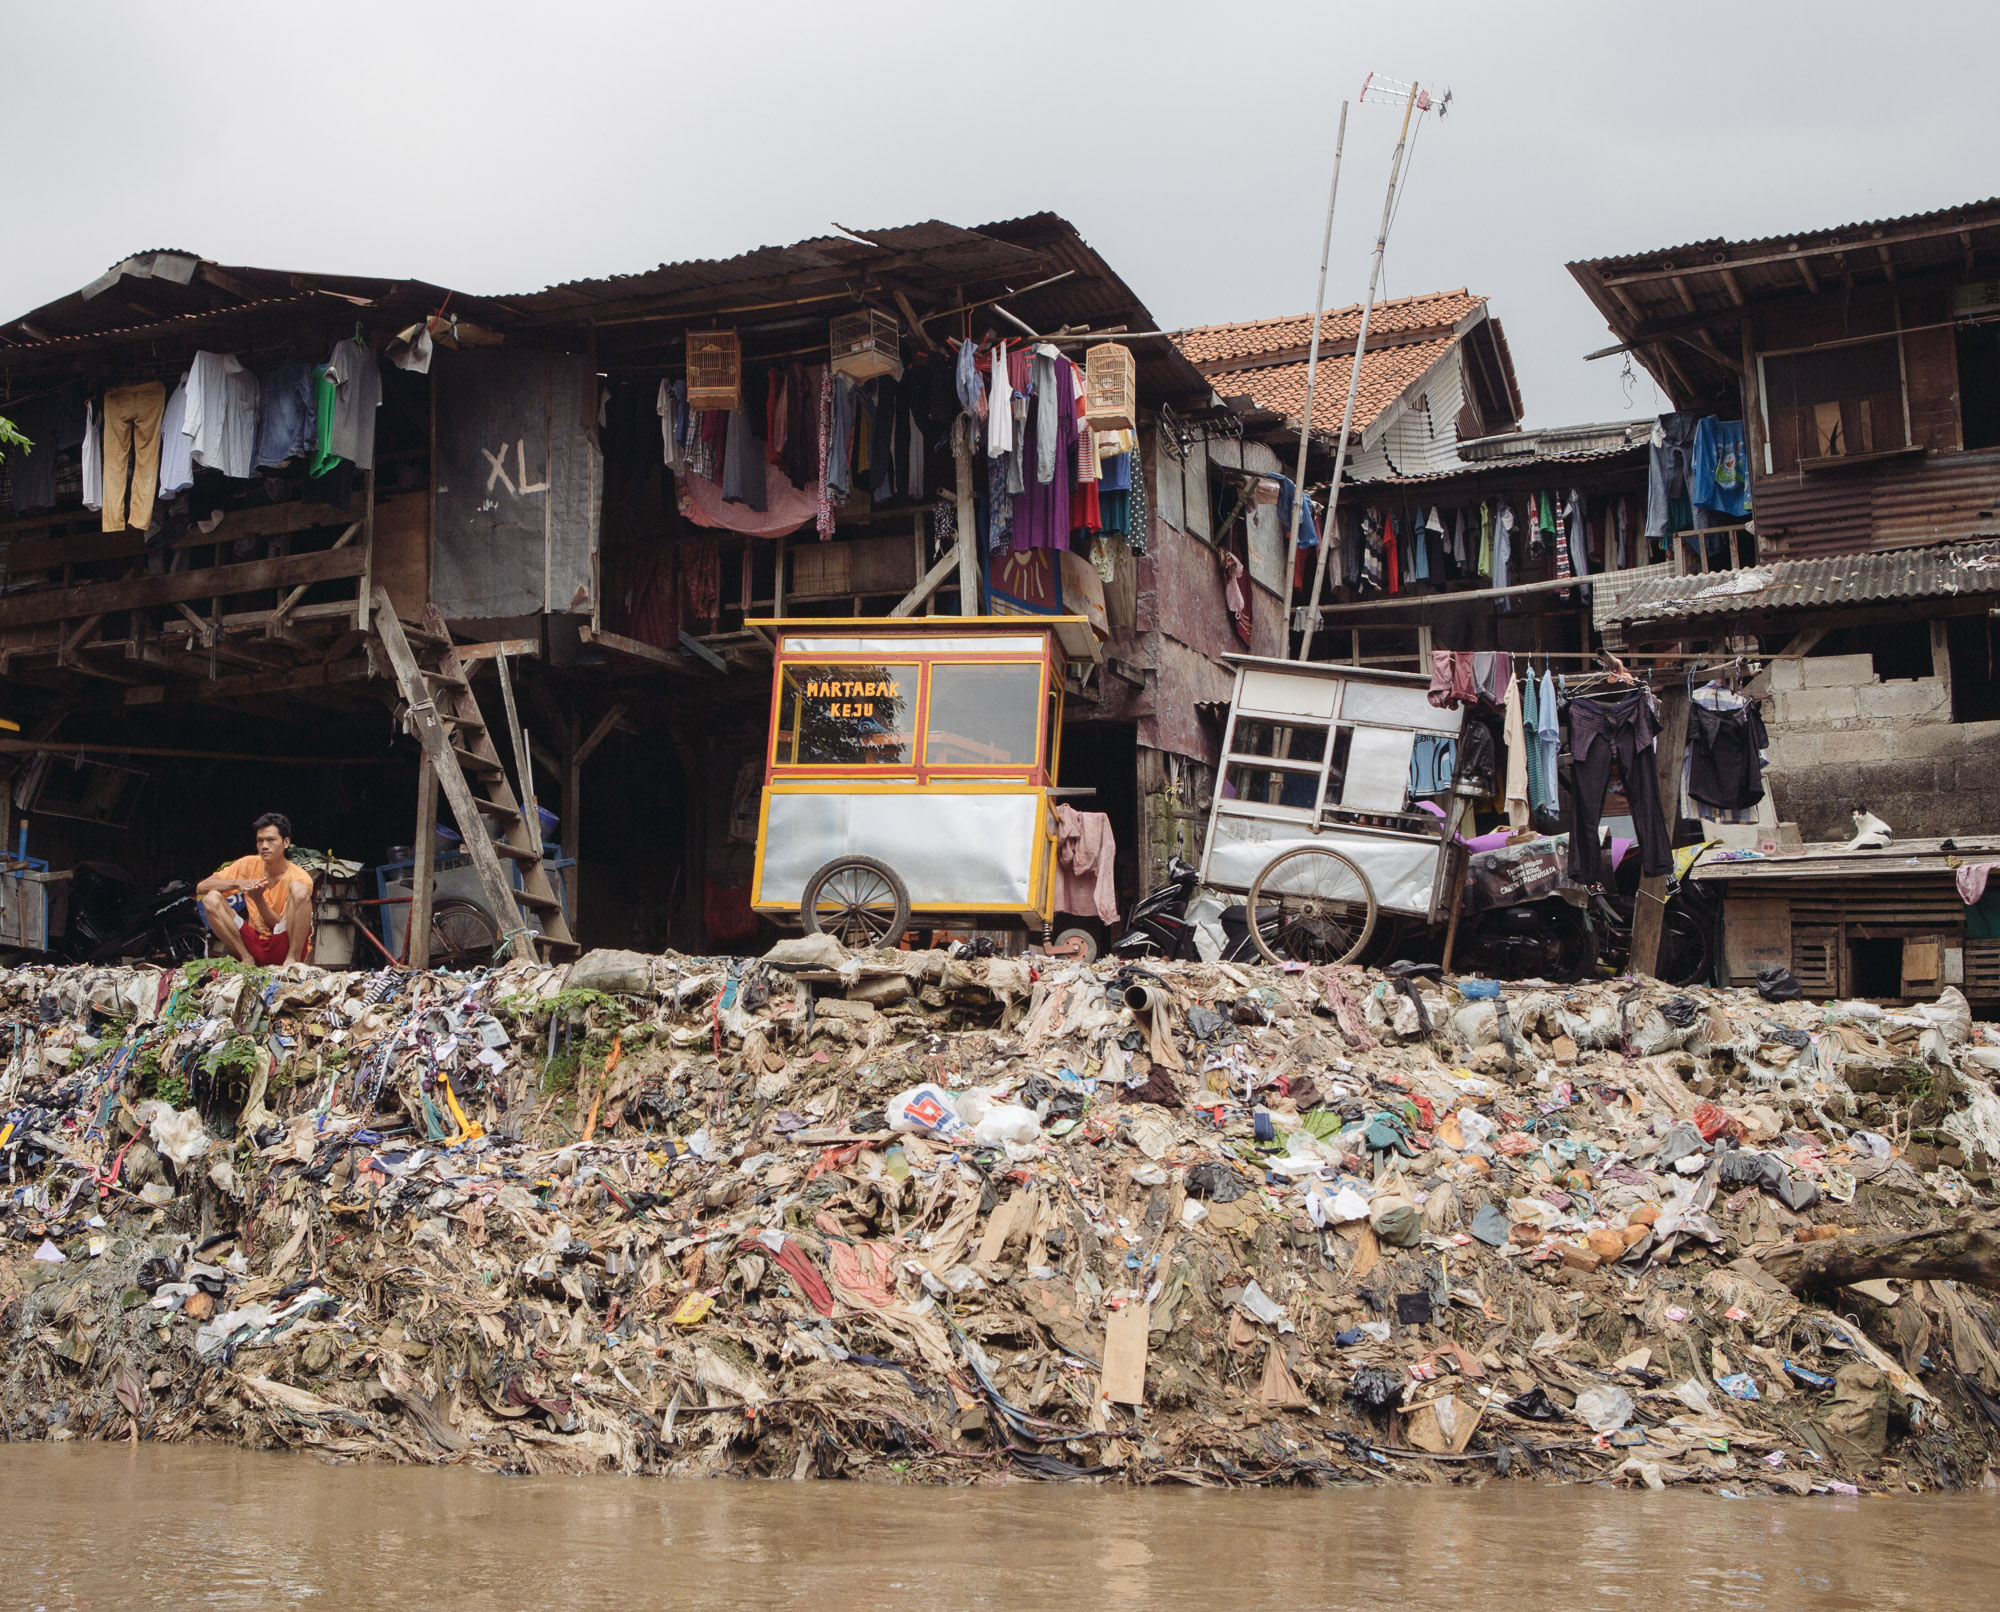 Slums line the Ciliwung river. As Jakarta's government seeks to revitalize the rivers to prevent flooding, hundred of thousands of people living on the banks are preparing for their eviction. (Photo by Muhammad Fadli/GroundTruth)